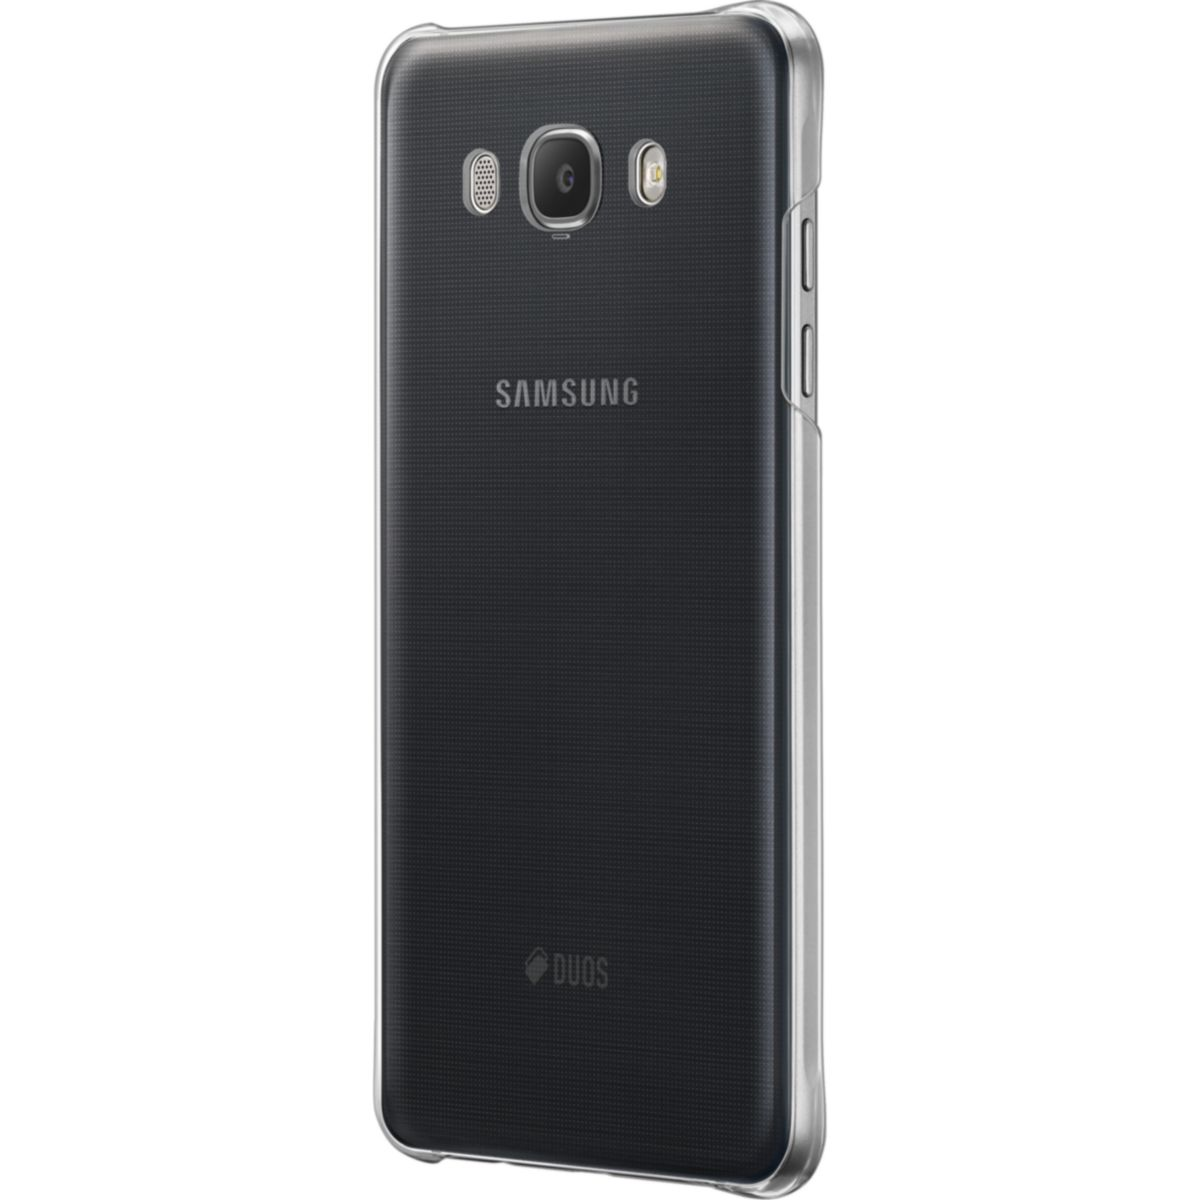 Samsung Clear Cover EF-AJ710 für Galaxy J7 (2016), Transparent